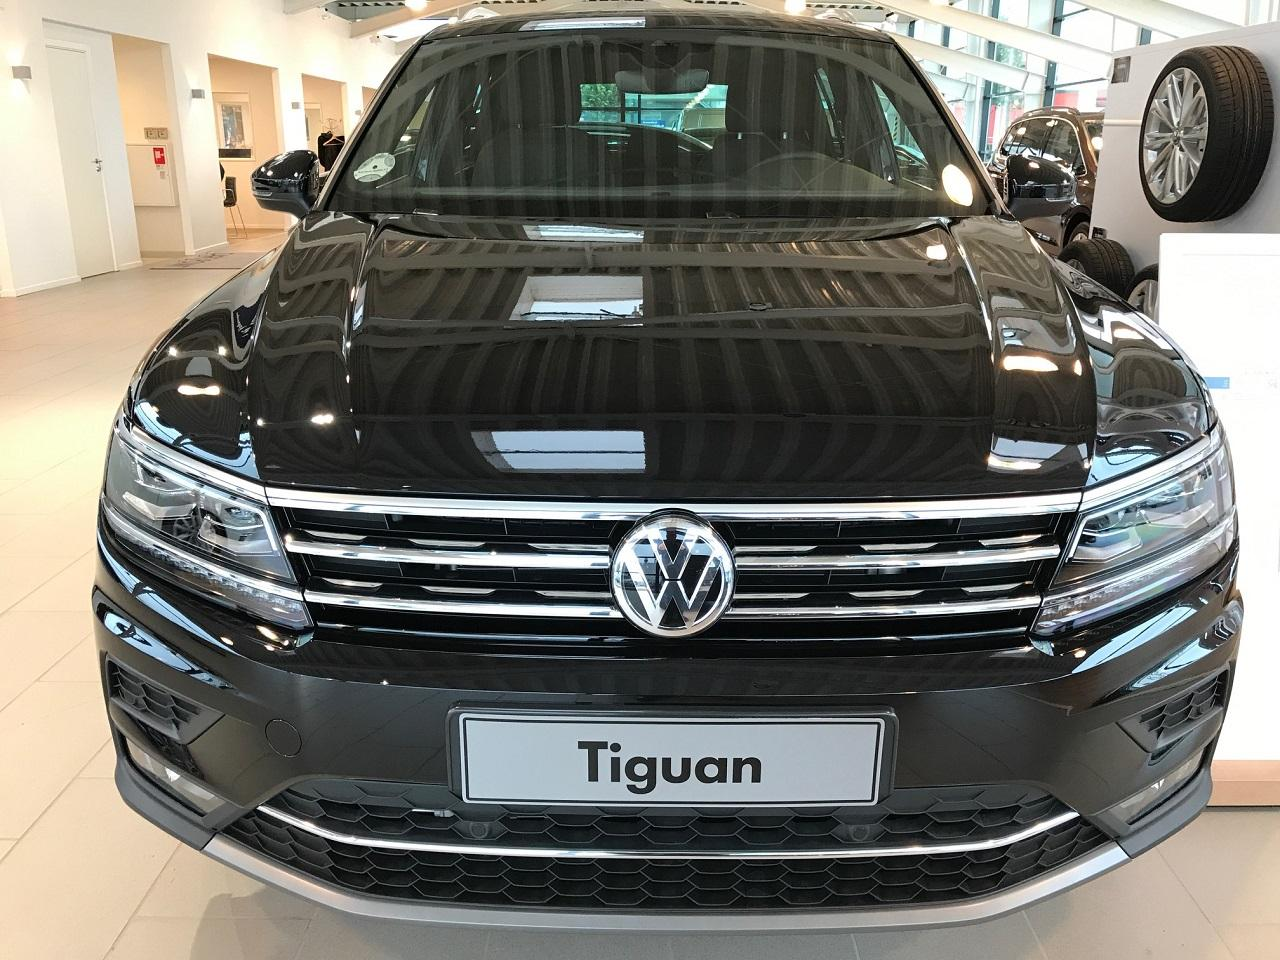 volkswagen eu tiguan comfortline 2 0 tdi scr 150 ps dsg. Black Bedroom Furniture Sets. Home Design Ideas